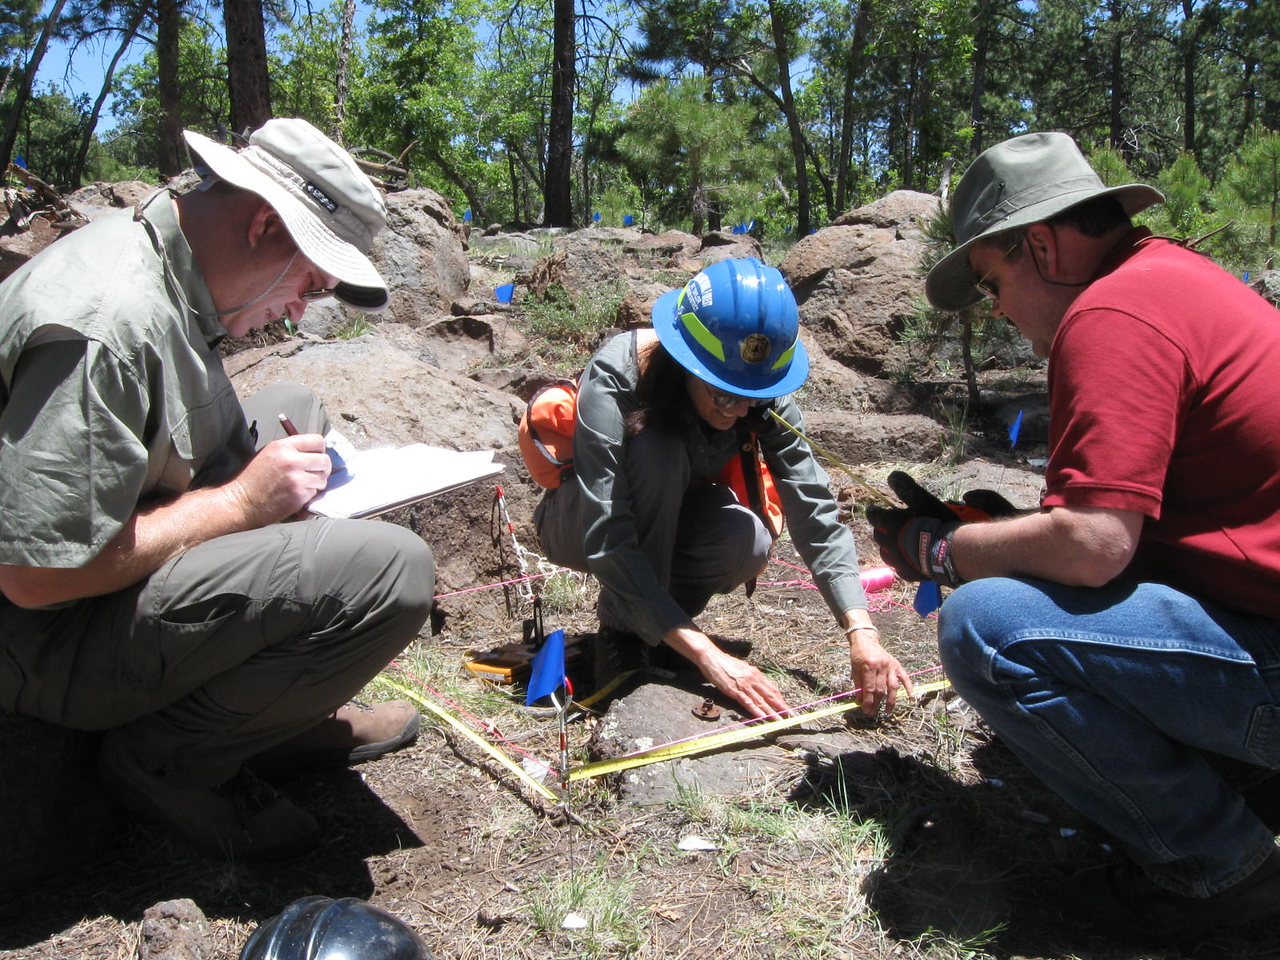 Mike McComb, Linda Popelish, and Brian Richardson begin the excavation work as surface features are mapped first prior to any digging.